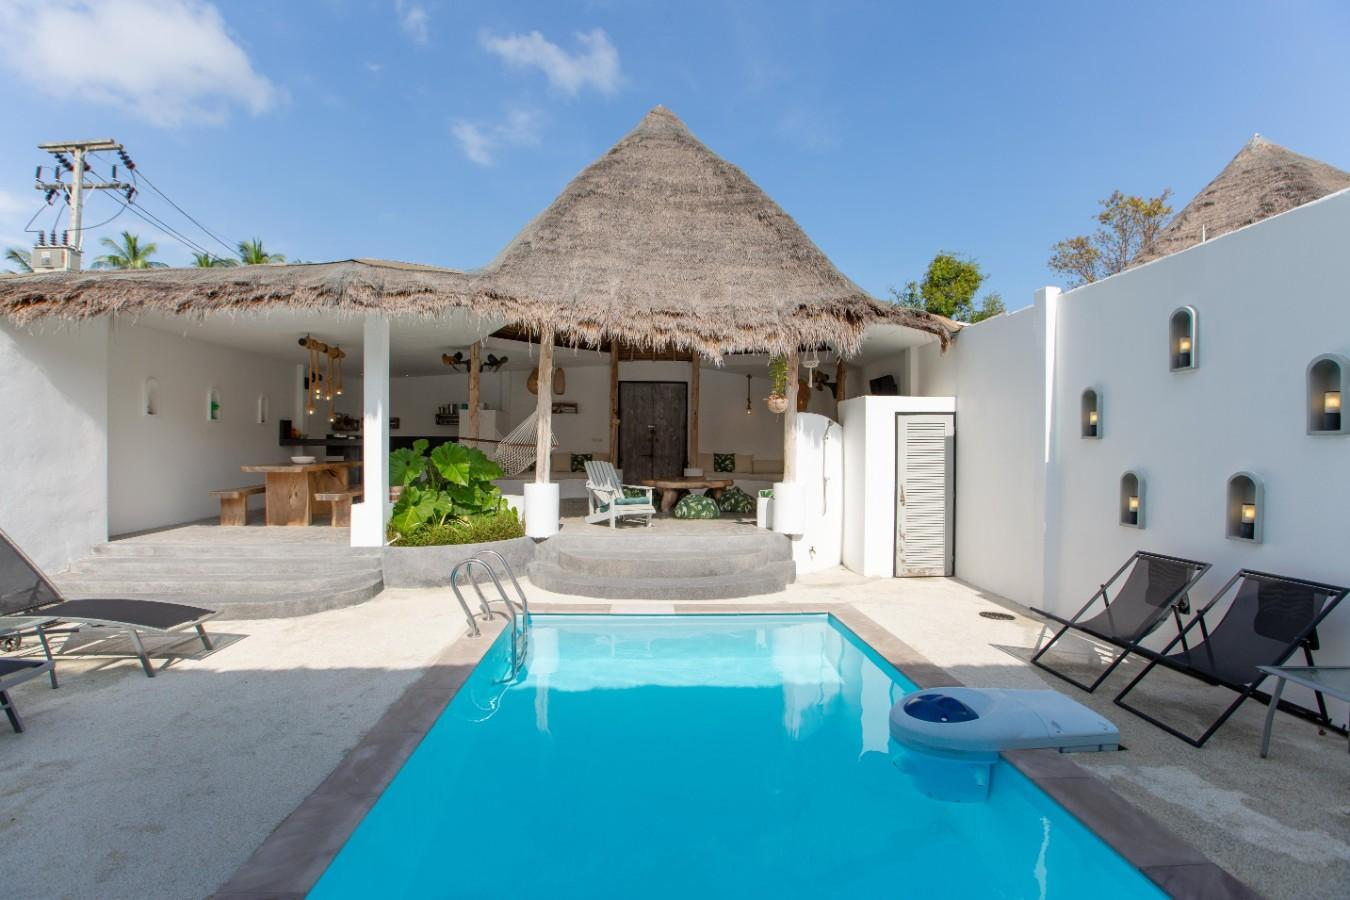 3-Bedroom Pool Villa (3 Bedroom Pool Villa)